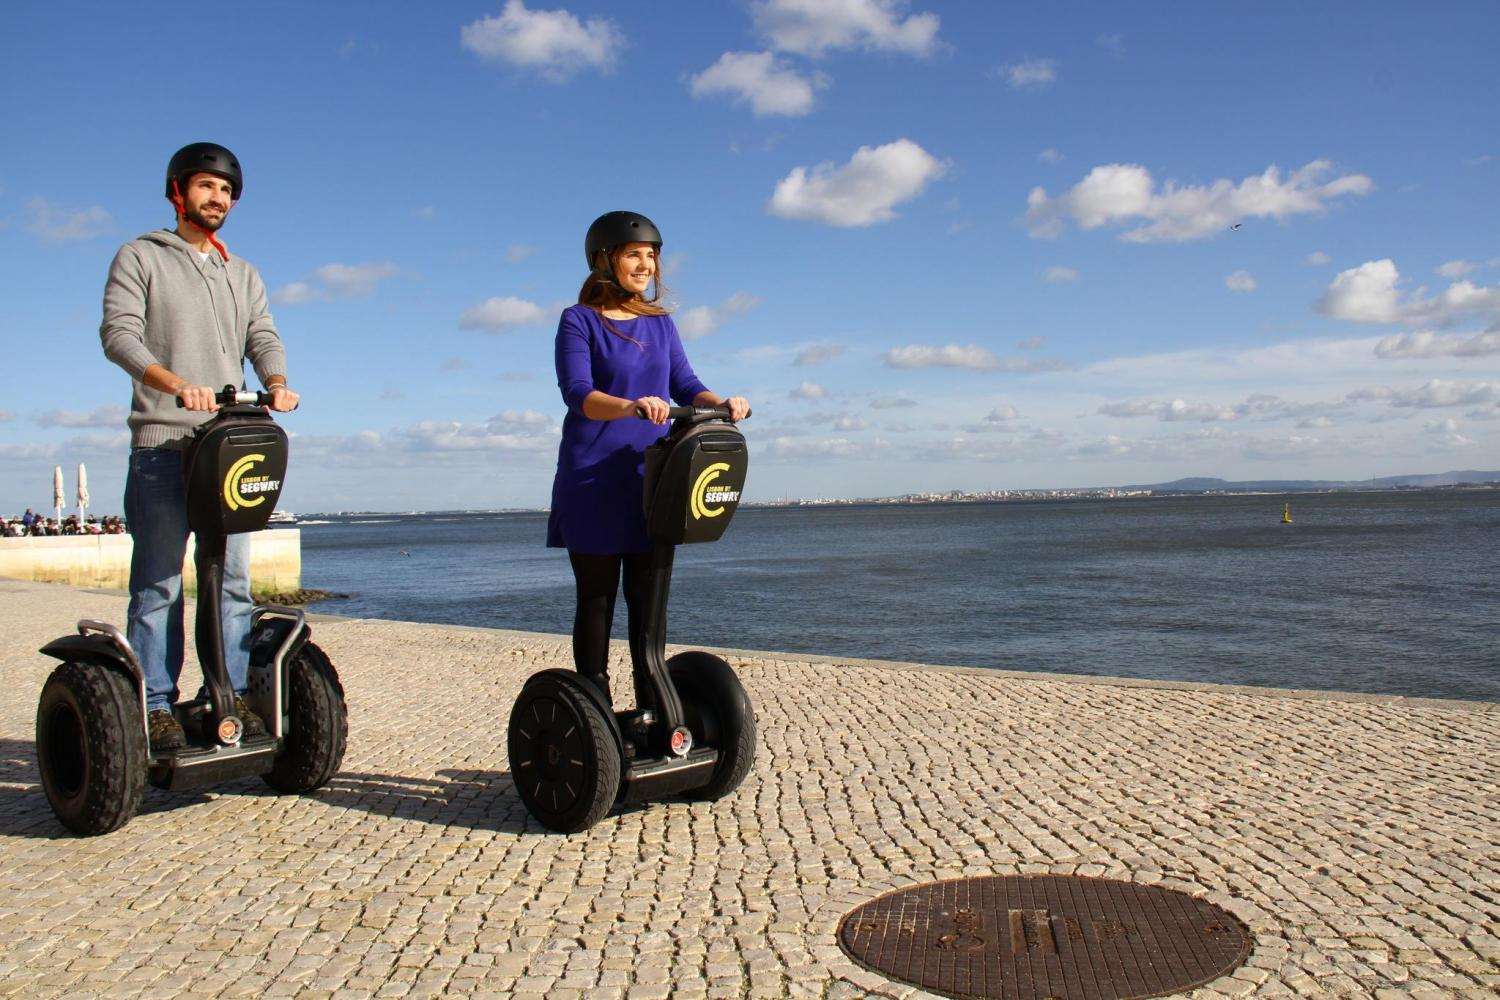 Lisbon Sightseeing Hop On Hop Off - Combined Tour of Two Days & Segway